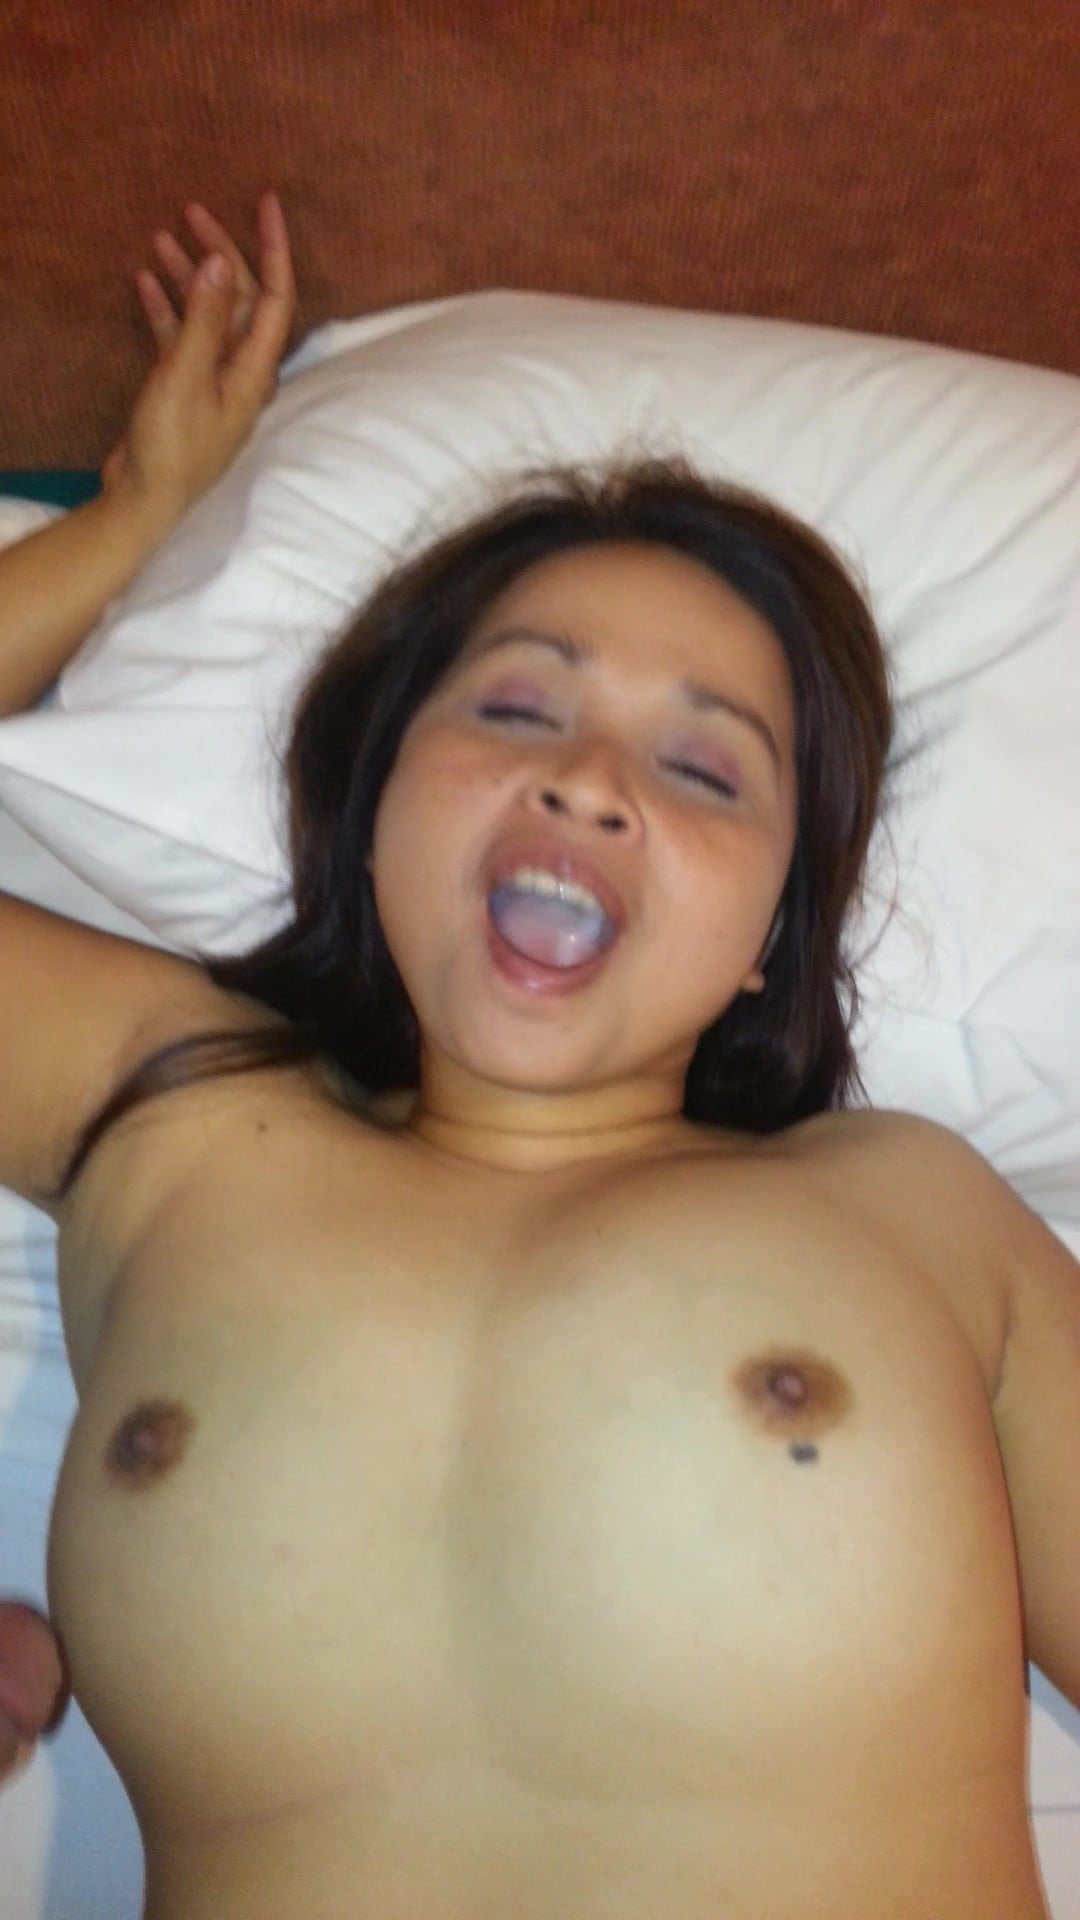 She swallows